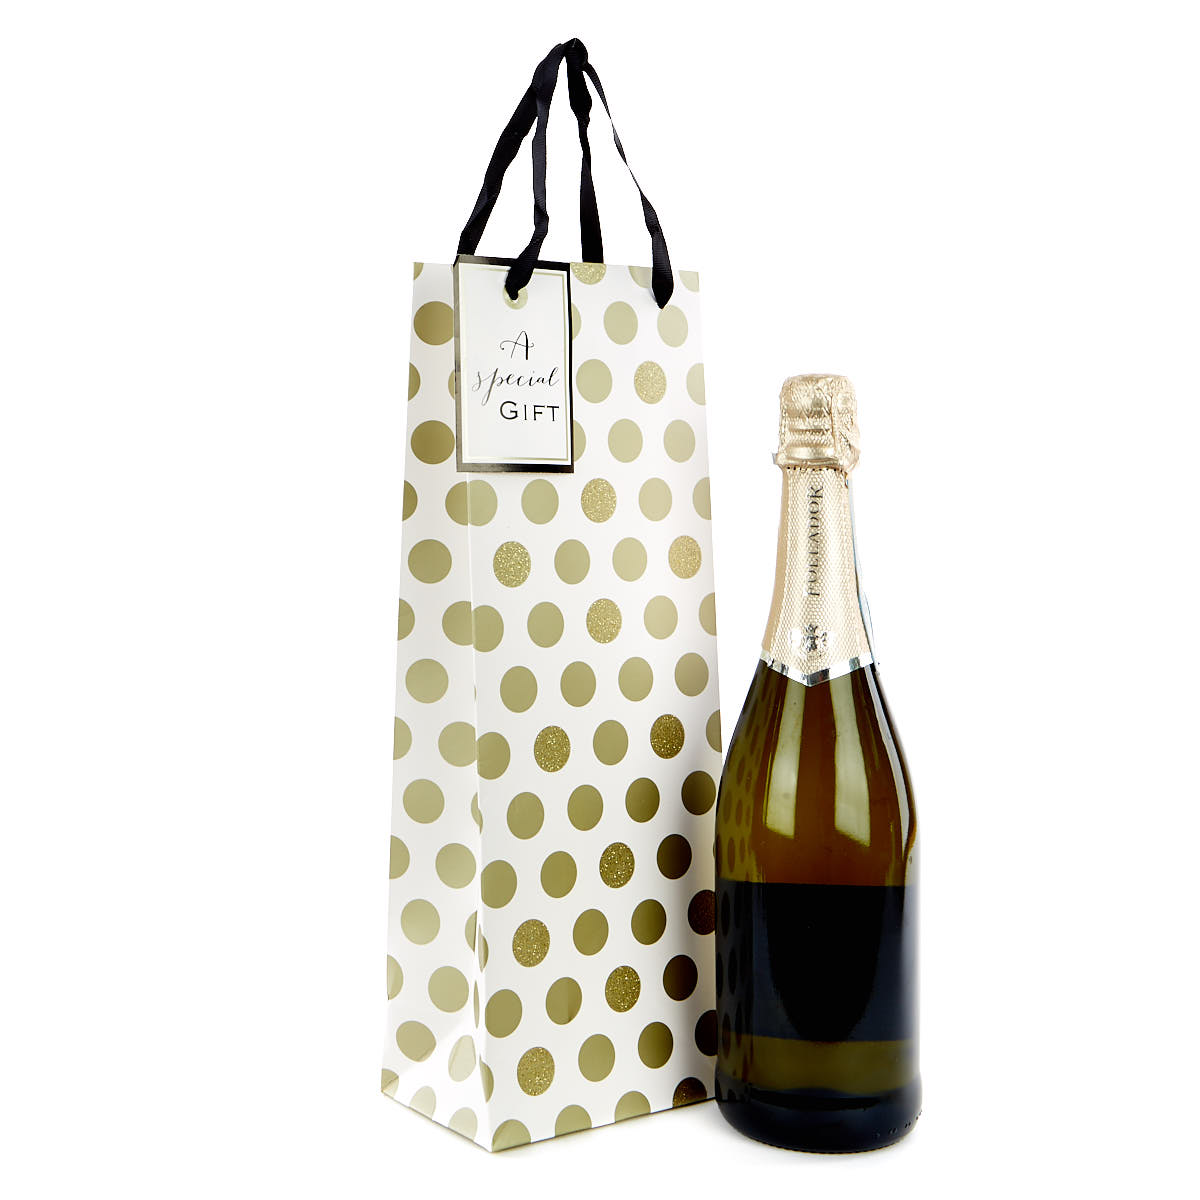 Gold Polka Dot Bottle Bag -  A Special Gift